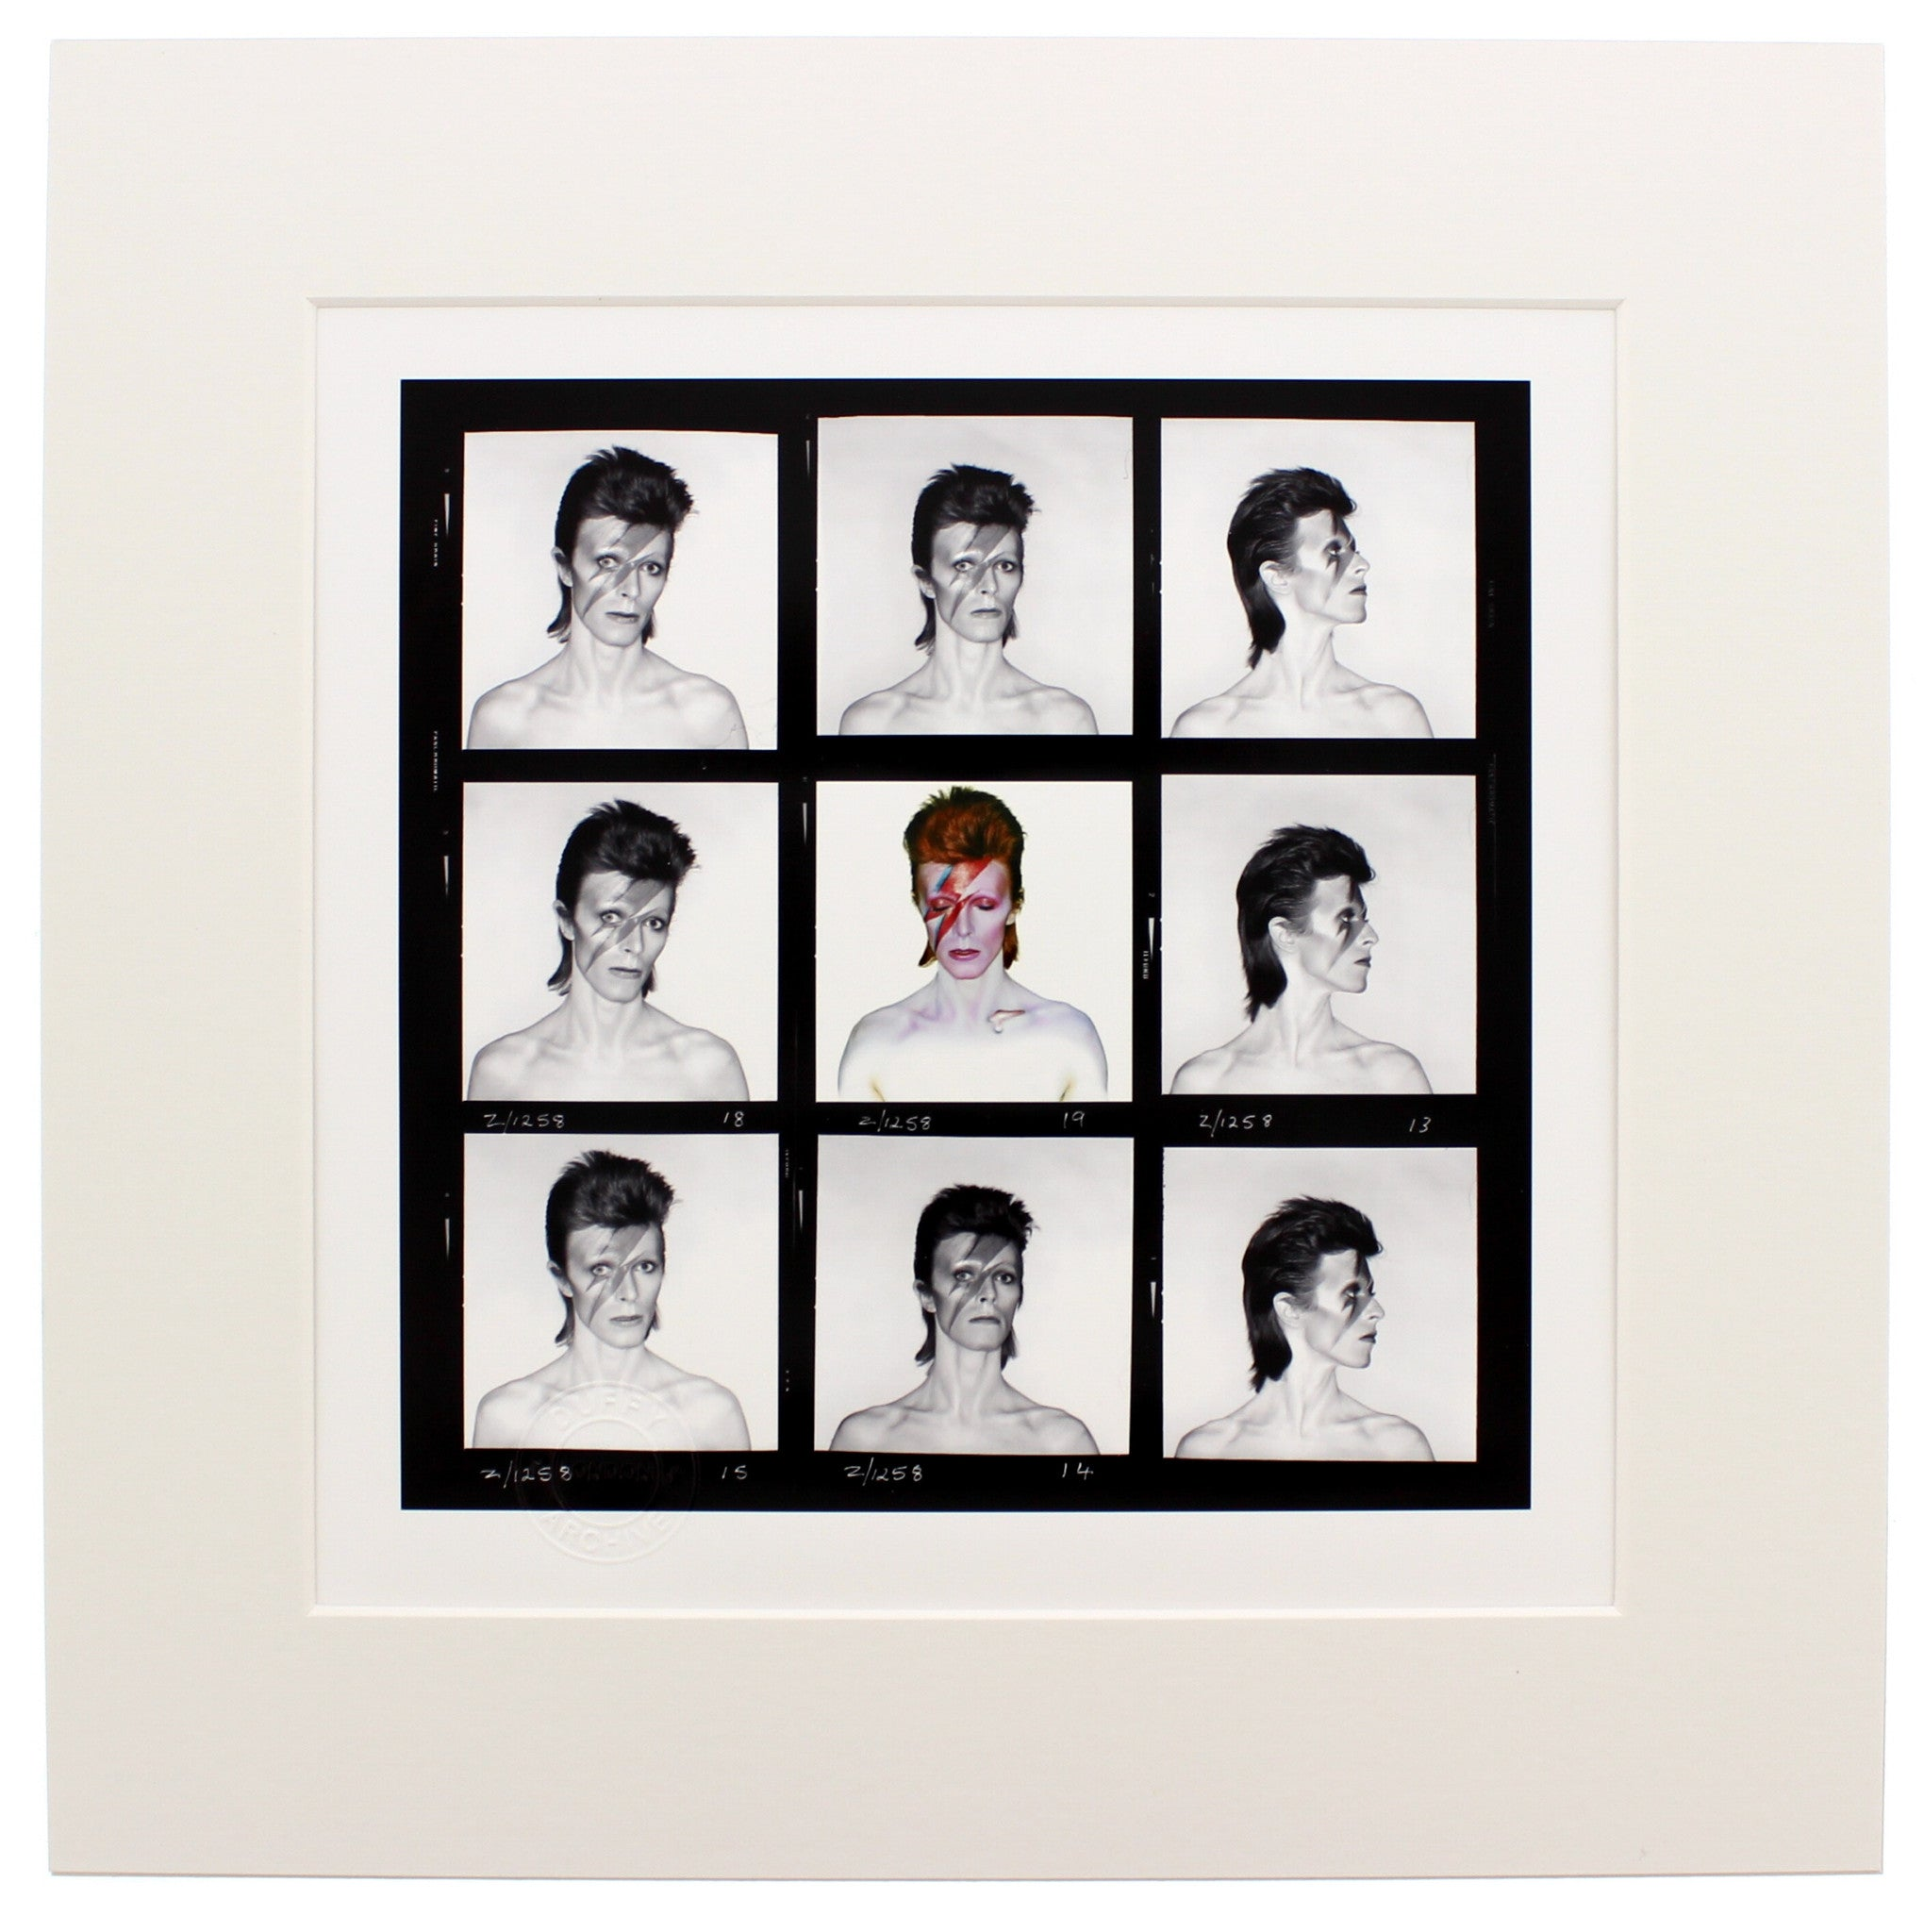 Aladdin Sane, 1973 Demi Contact Sheet Brian Duffy Archive Mounted Print in Black Wood Frame